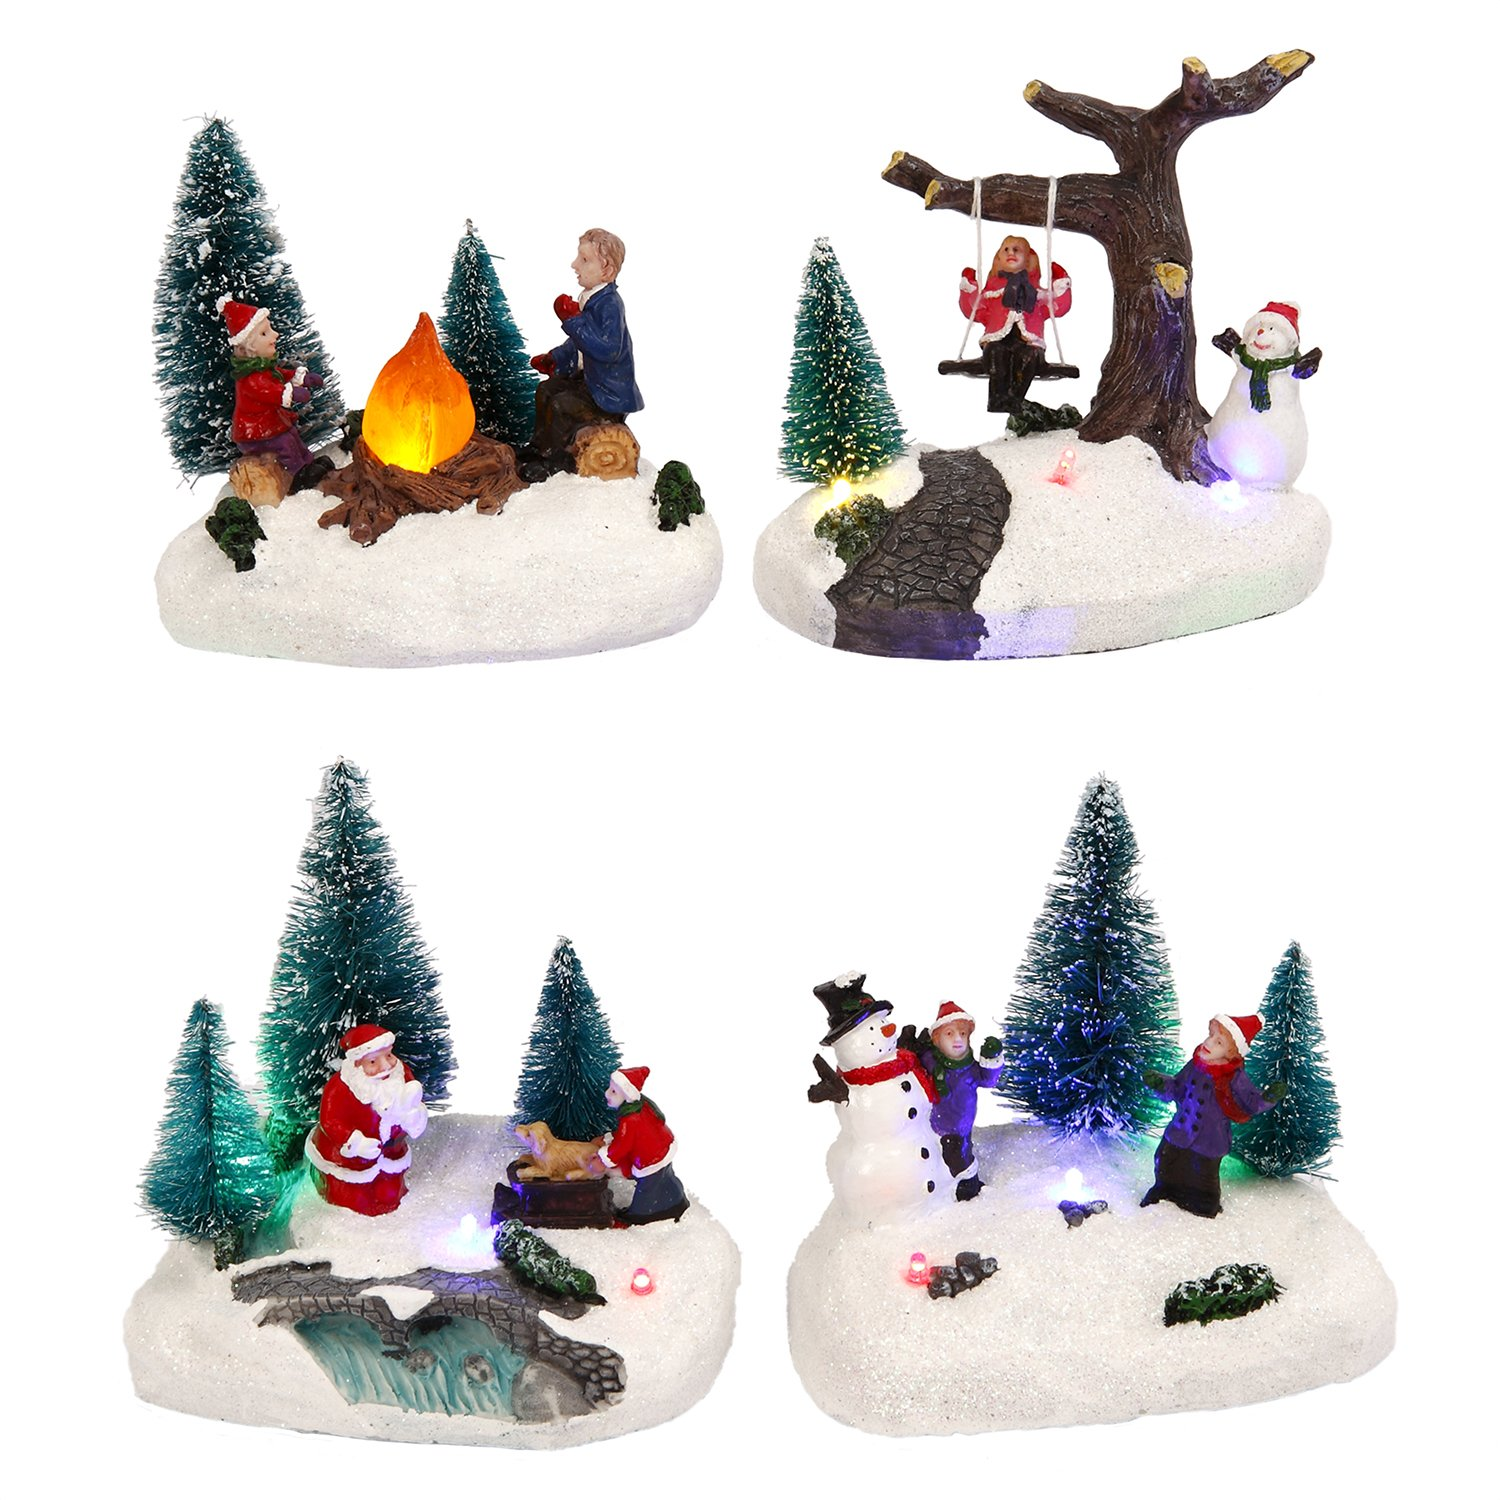 Gerson Set of 4 Light Up Holiday Winter Snow Village Town Christmas Scenes Figure Decor